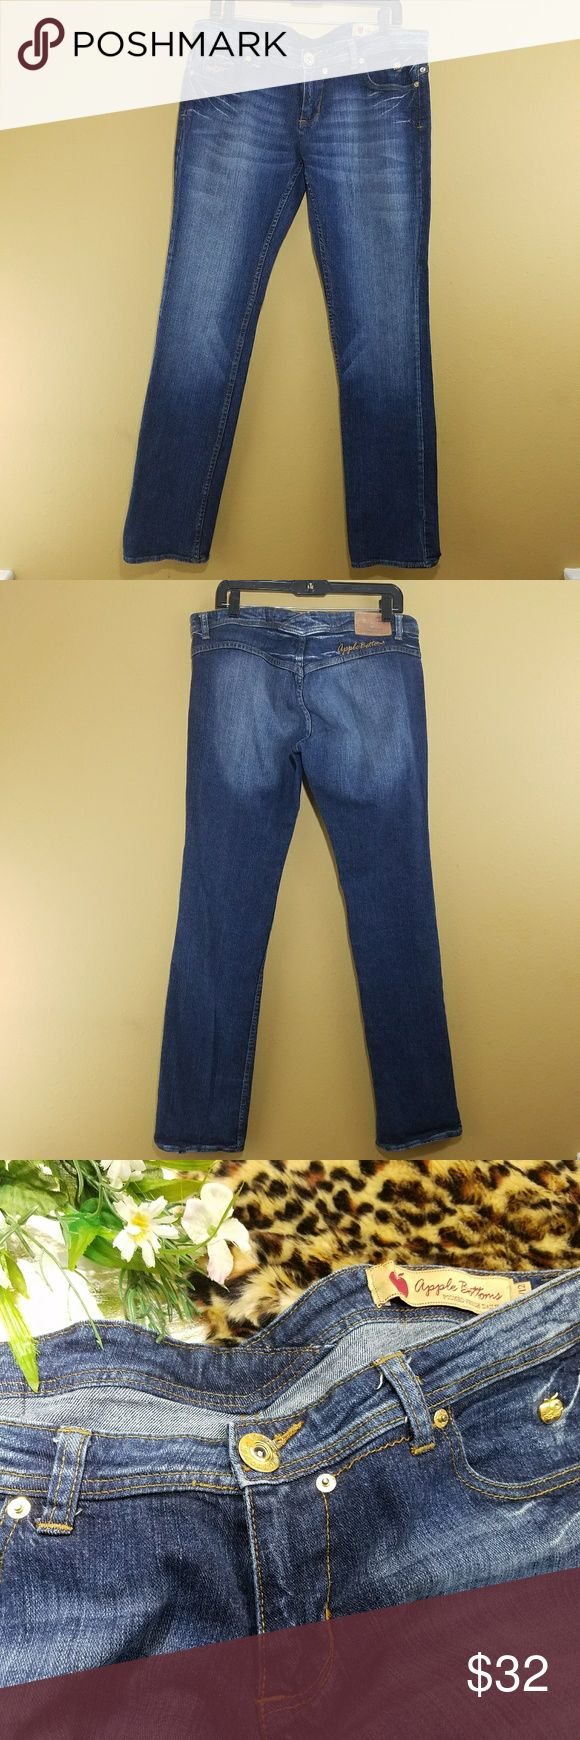 """Apple Bottoms Jeans sz 11/12 33"""" inseam Brand: Apple Bottoms Size: 11/12 Condition: Preloved, no holes, no tears, no stains  99% cotton 1% spandex. Machine washable. Made in China.  33"""" inseam 8"""" front rise 35"""" waist Apple Bottoms Jeans Boot Cut"""